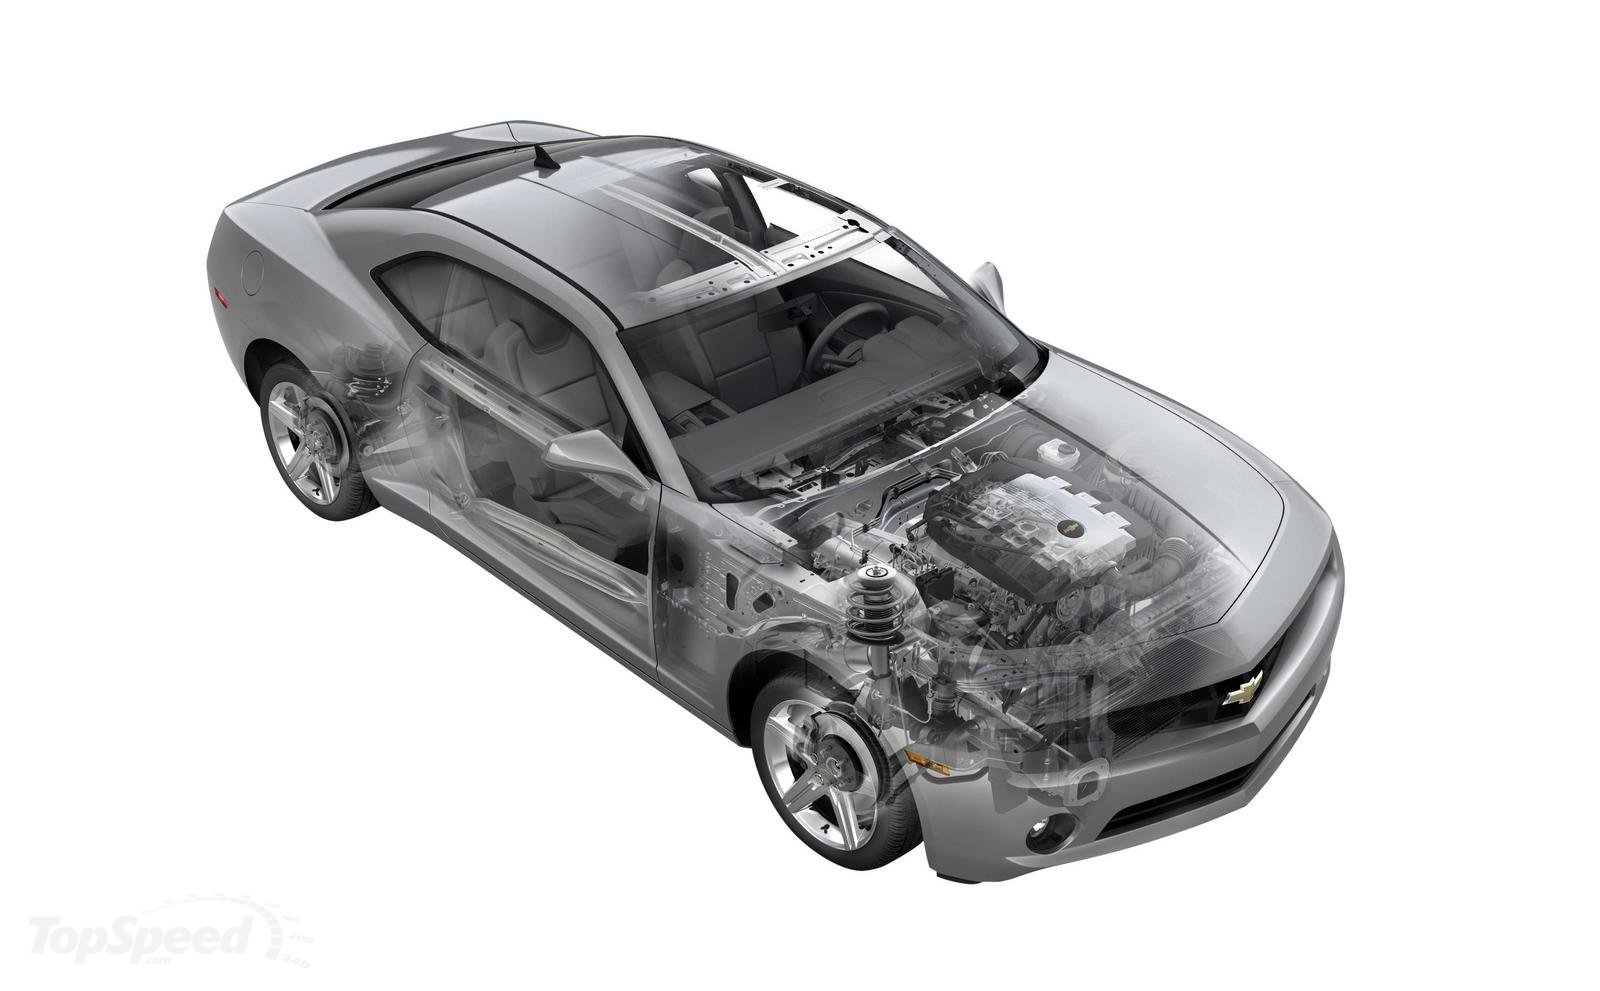 2010 Chevrolet Camaro Body Structure UHSS – Boron Extrication